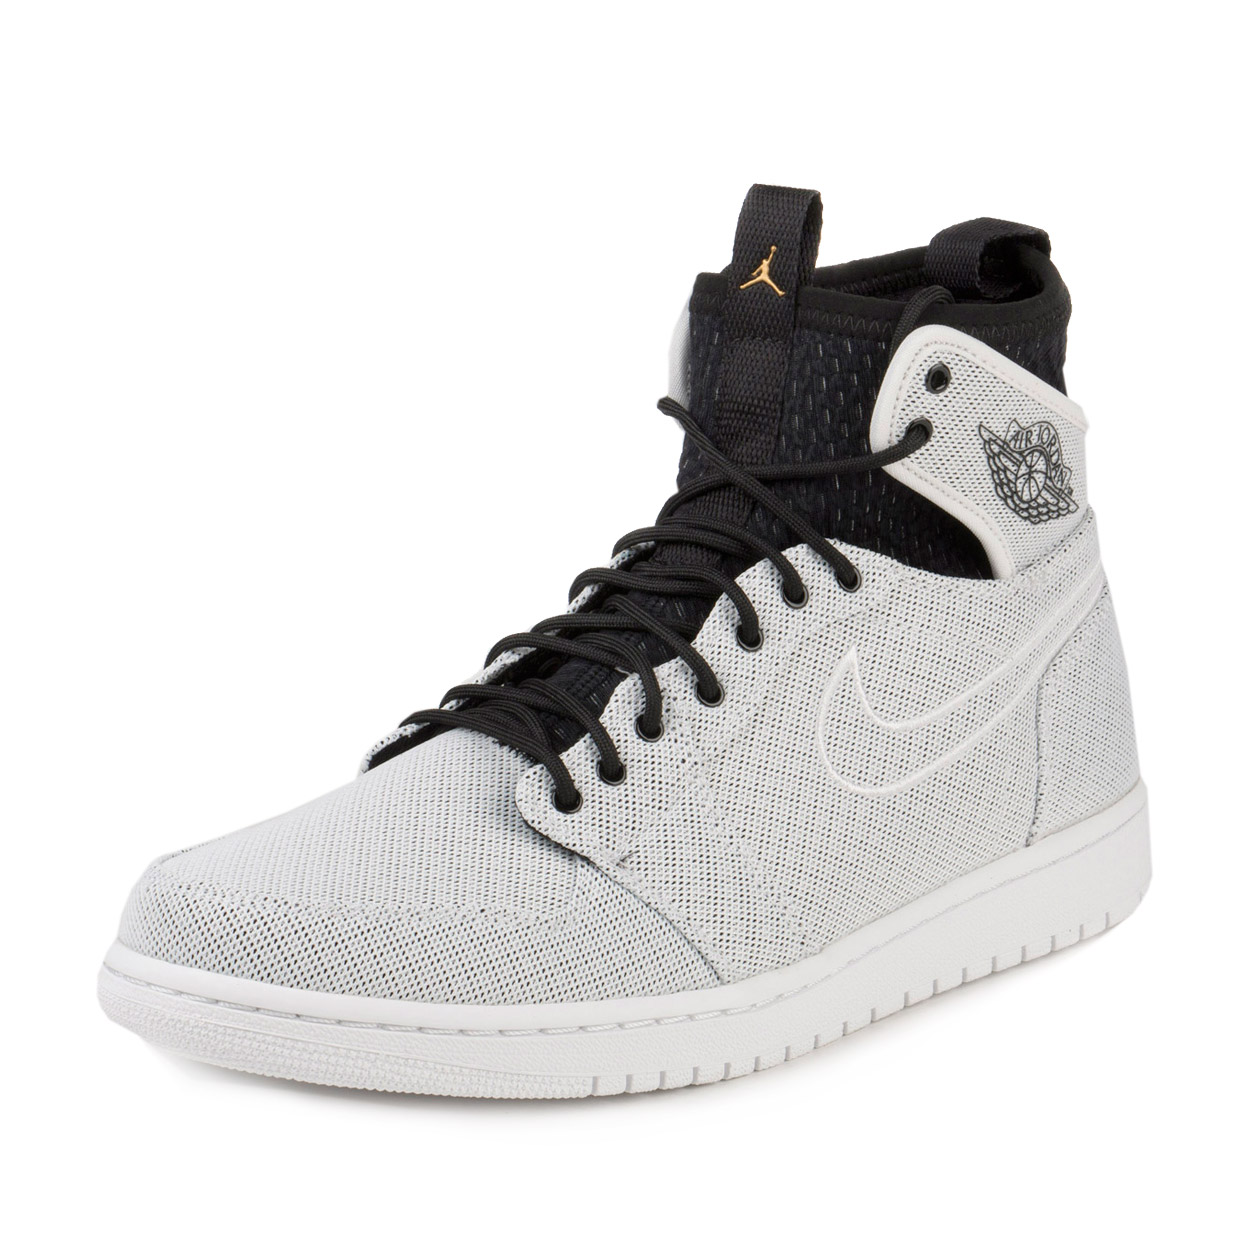 Nike Mens Air Jordan 1 Retro Ultra High White/Mtcl Gld Cn...